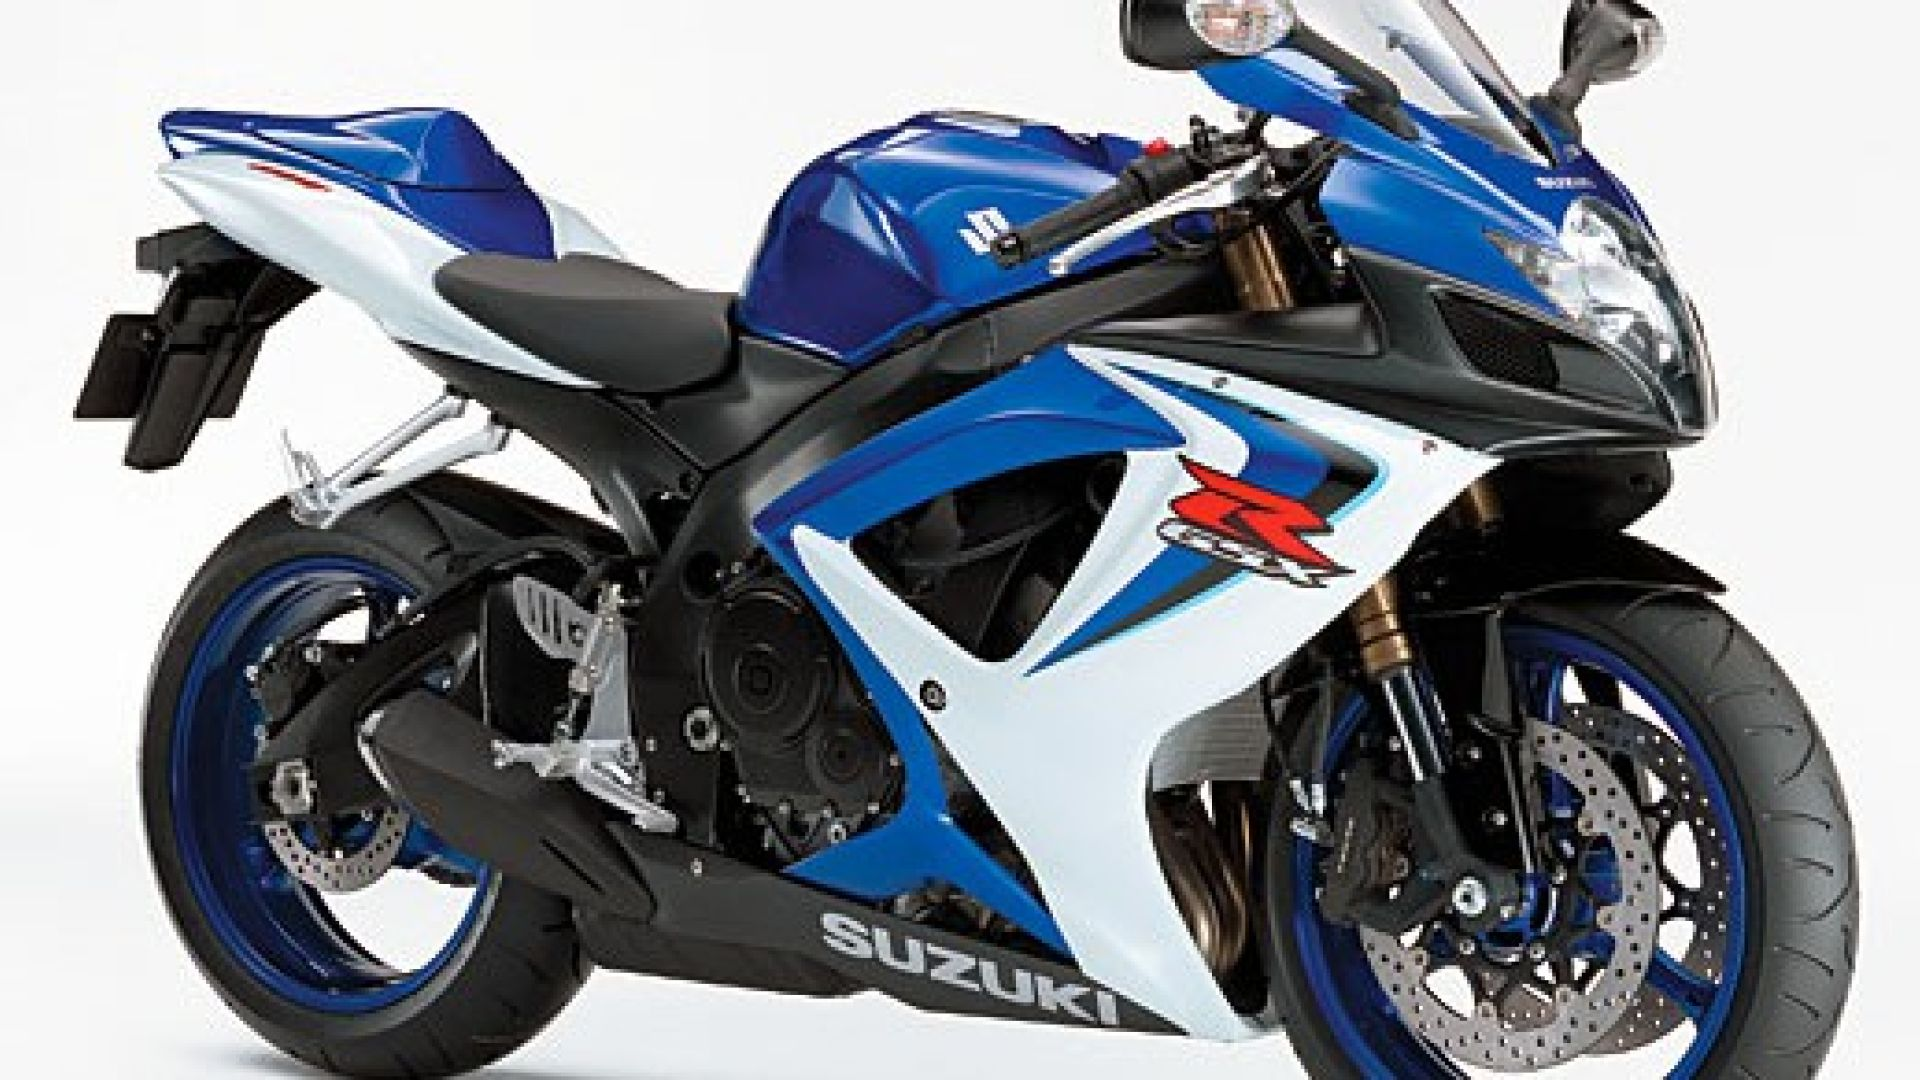 anteprima suzuki gsx r 600 750 k6 motorbox. Black Bedroom Furniture Sets. Home Design Ideas